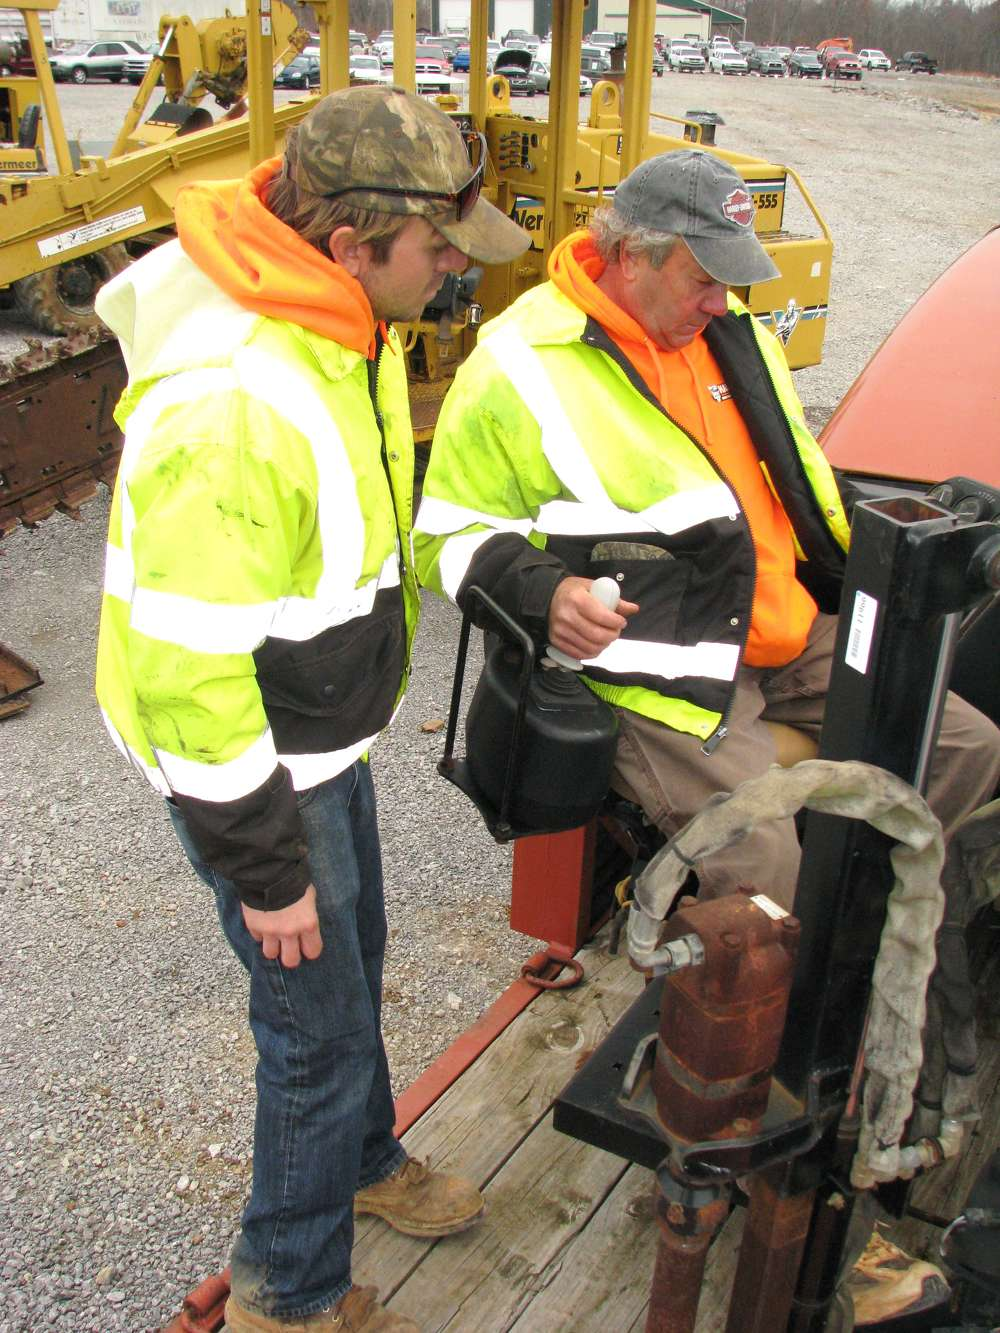 Keaton (L) and C.K. Hanks, both of Hanks Directional, Auburn, Ky., test this Ditch Witch JT2020 directional drill.